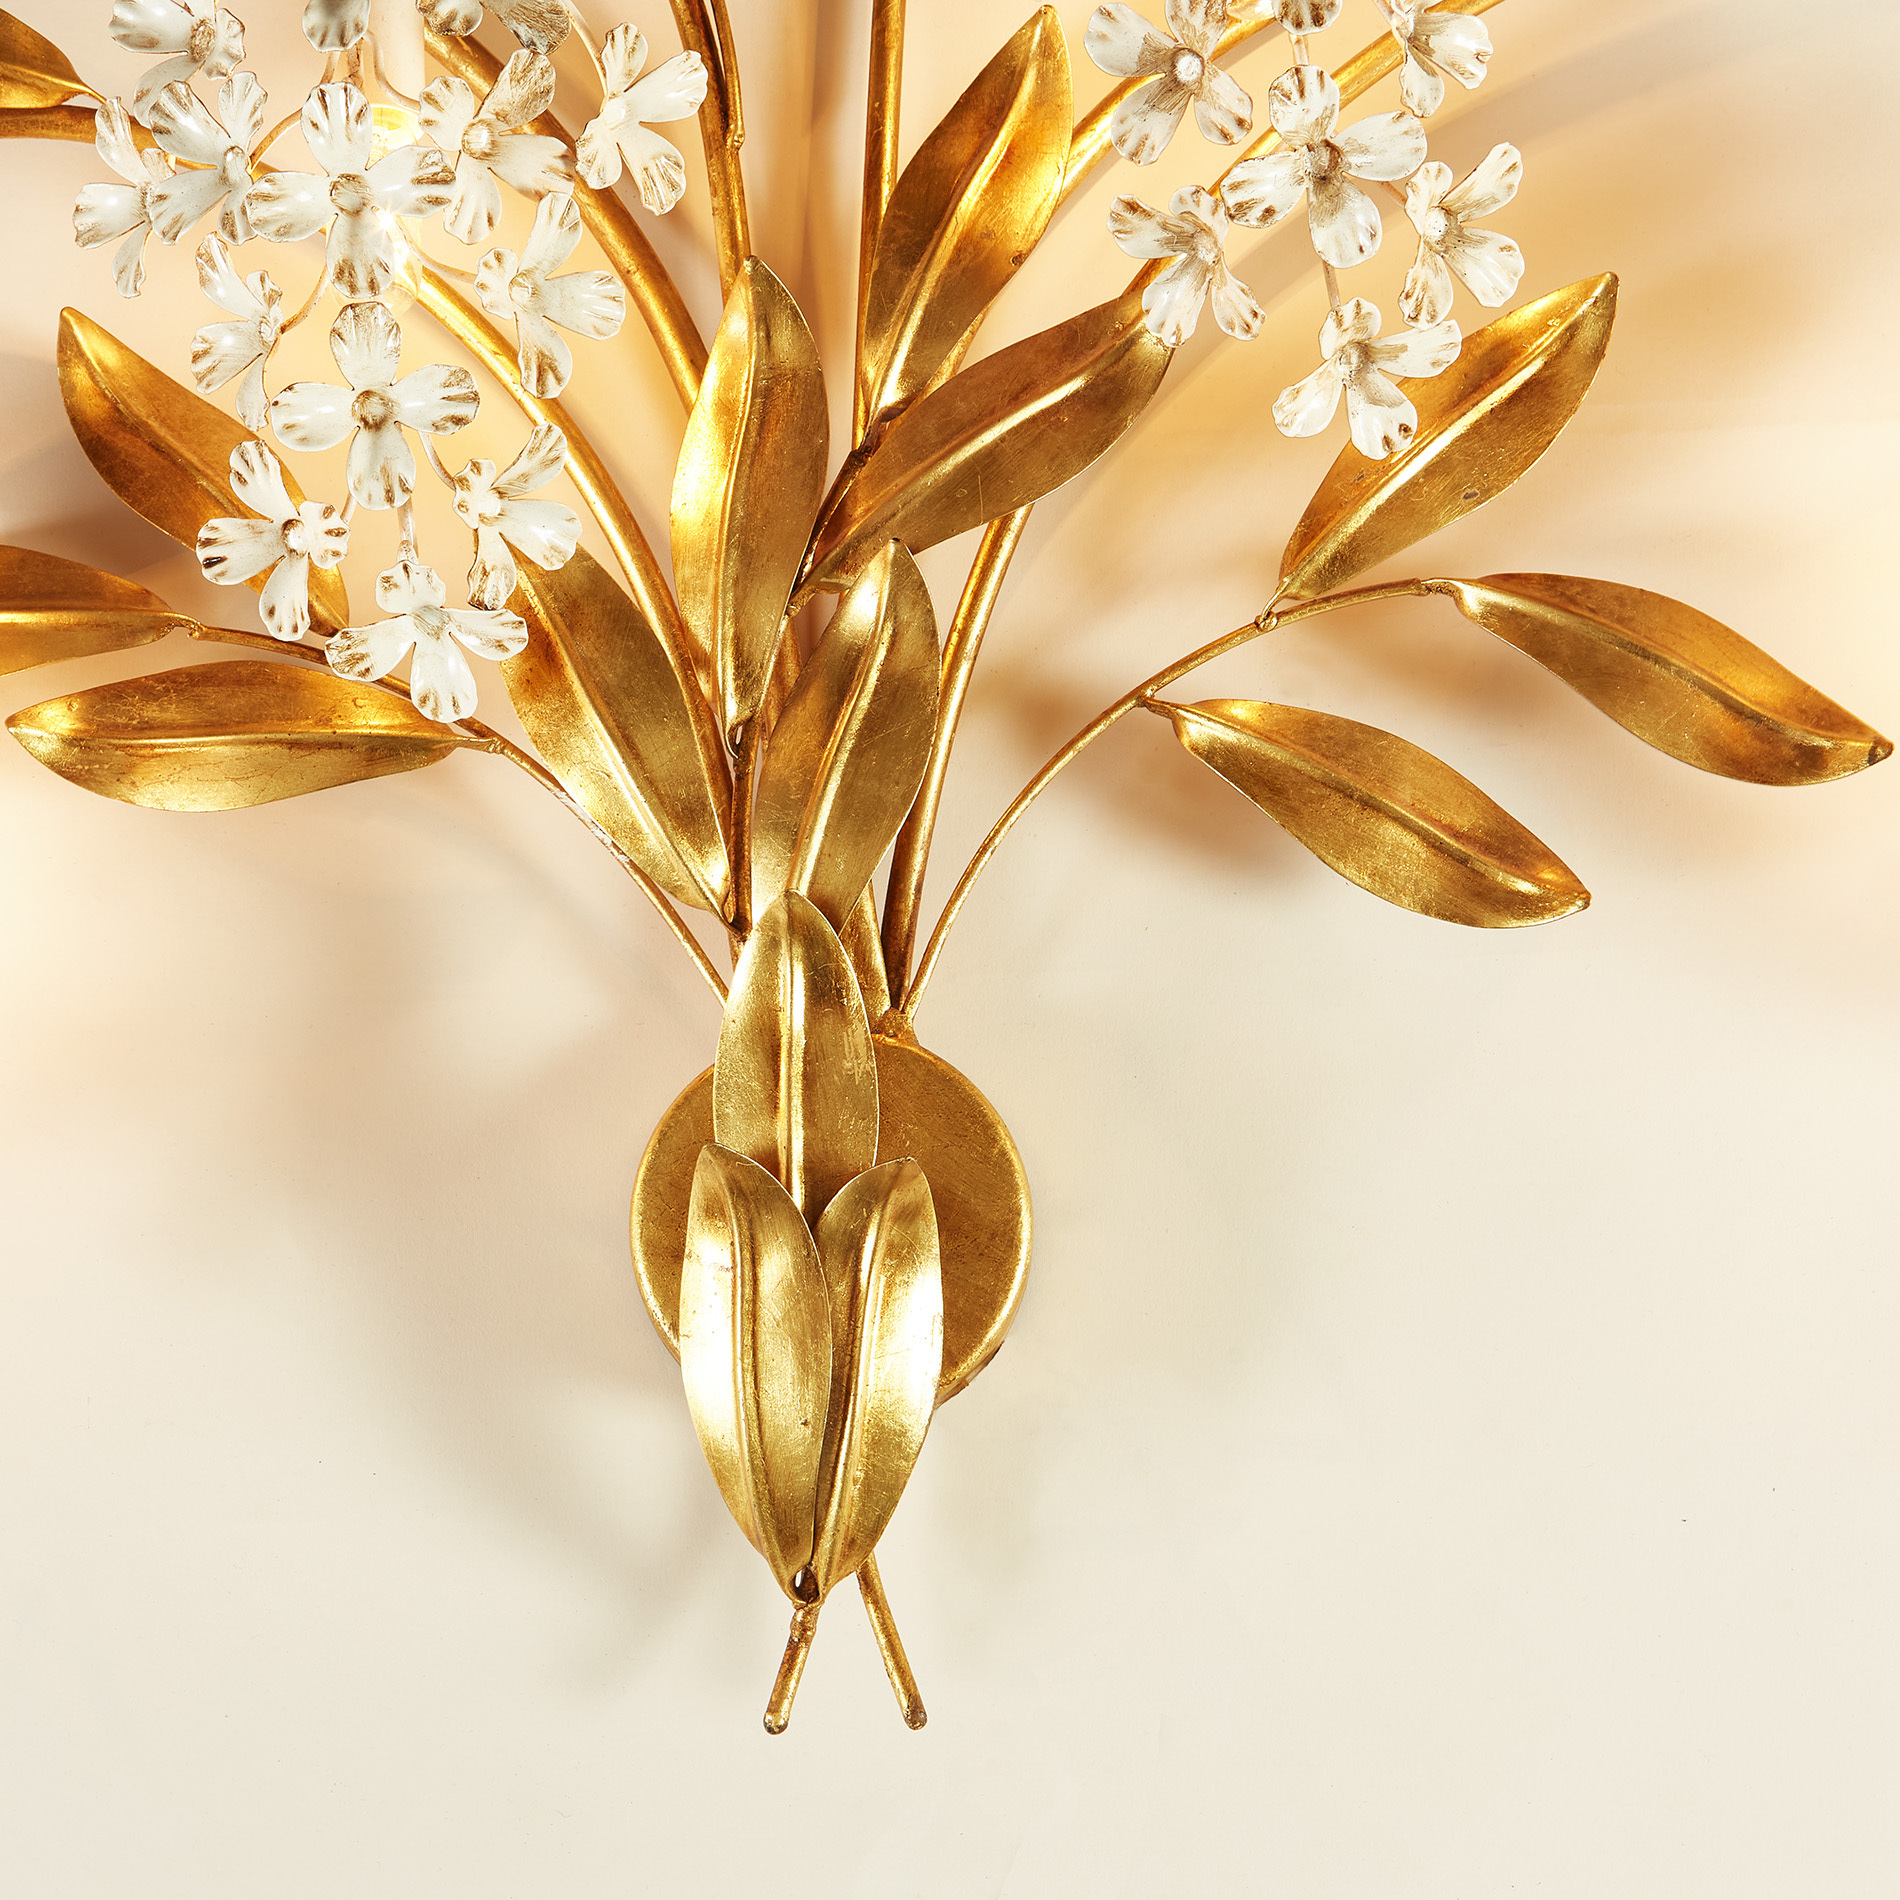 The image for Gold Wisteria Wall Light 20210427 0139 V1